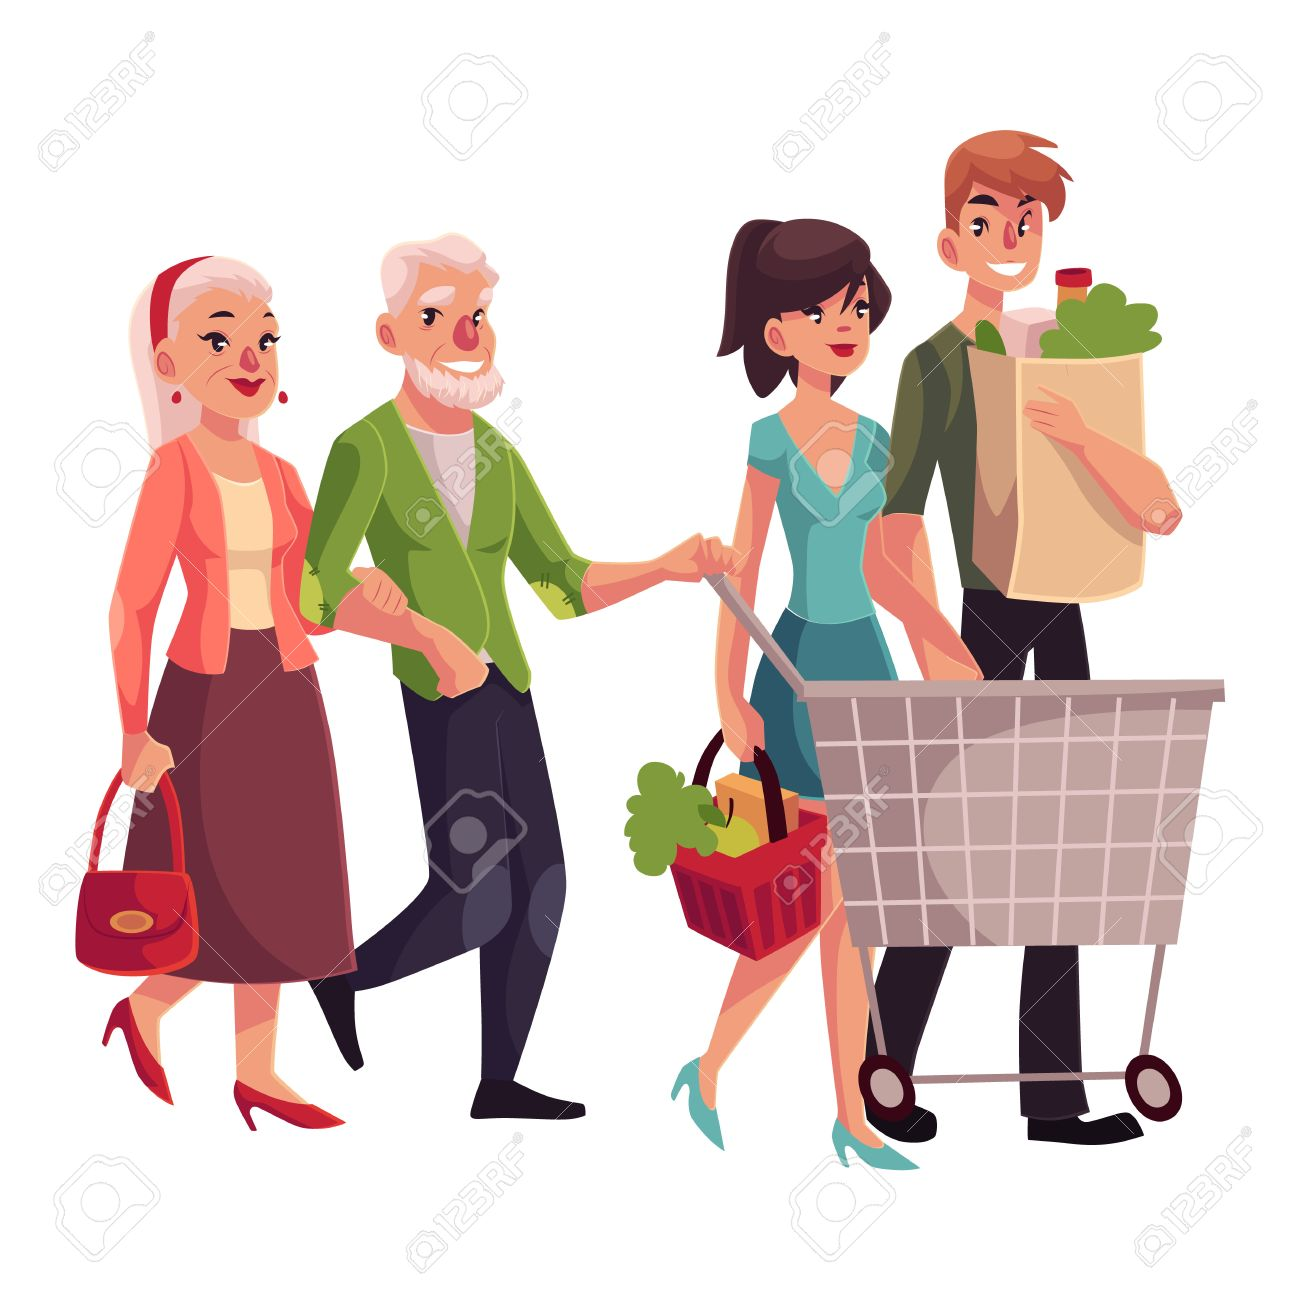 Old And Young Couples Shopping Together, Buying Food In Grocery Store,  Cartoon Vector Illustration